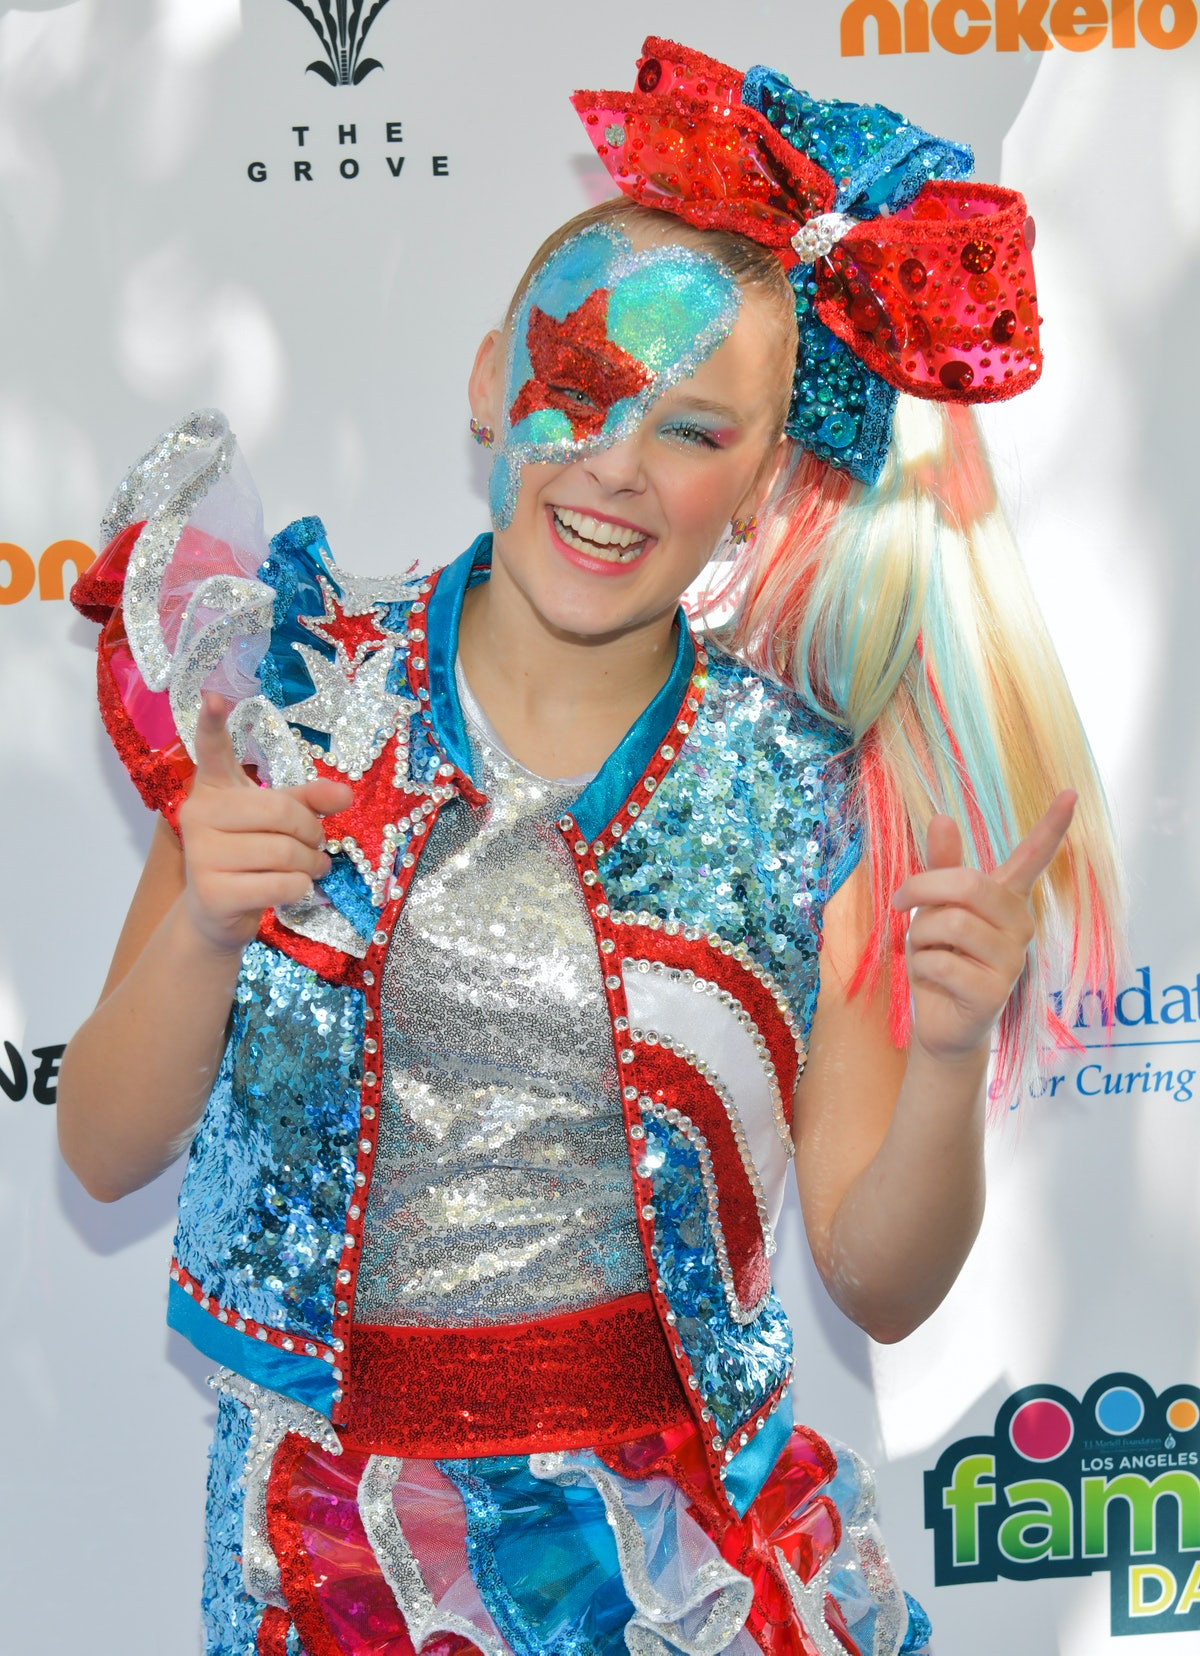 JoJo Siwa attends T.J. Martell Foundation's 10th Annual LA Family Day at The Grove on October 05, 2019 in Los Angeles, California. (Photo by Rodin Eckenroth/Getty Images)